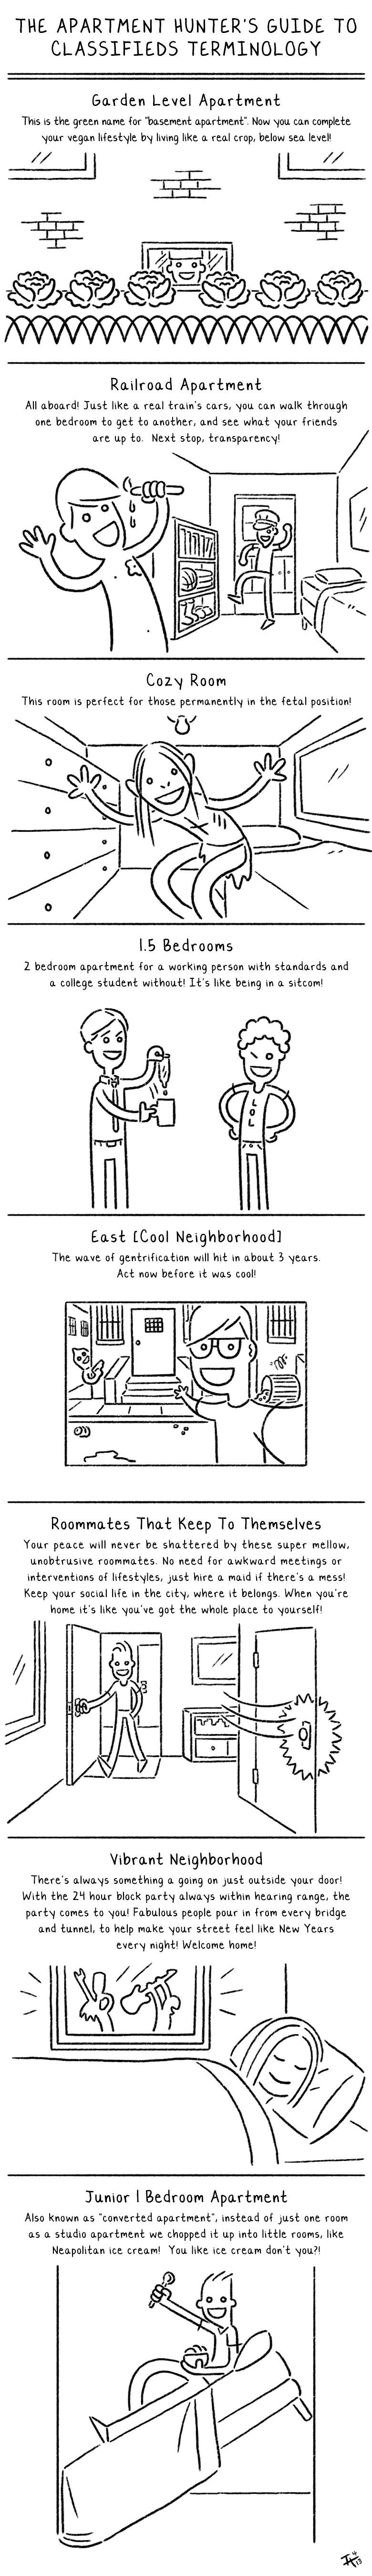 Mashable Just Posted My Comic On Apartment Hunting!